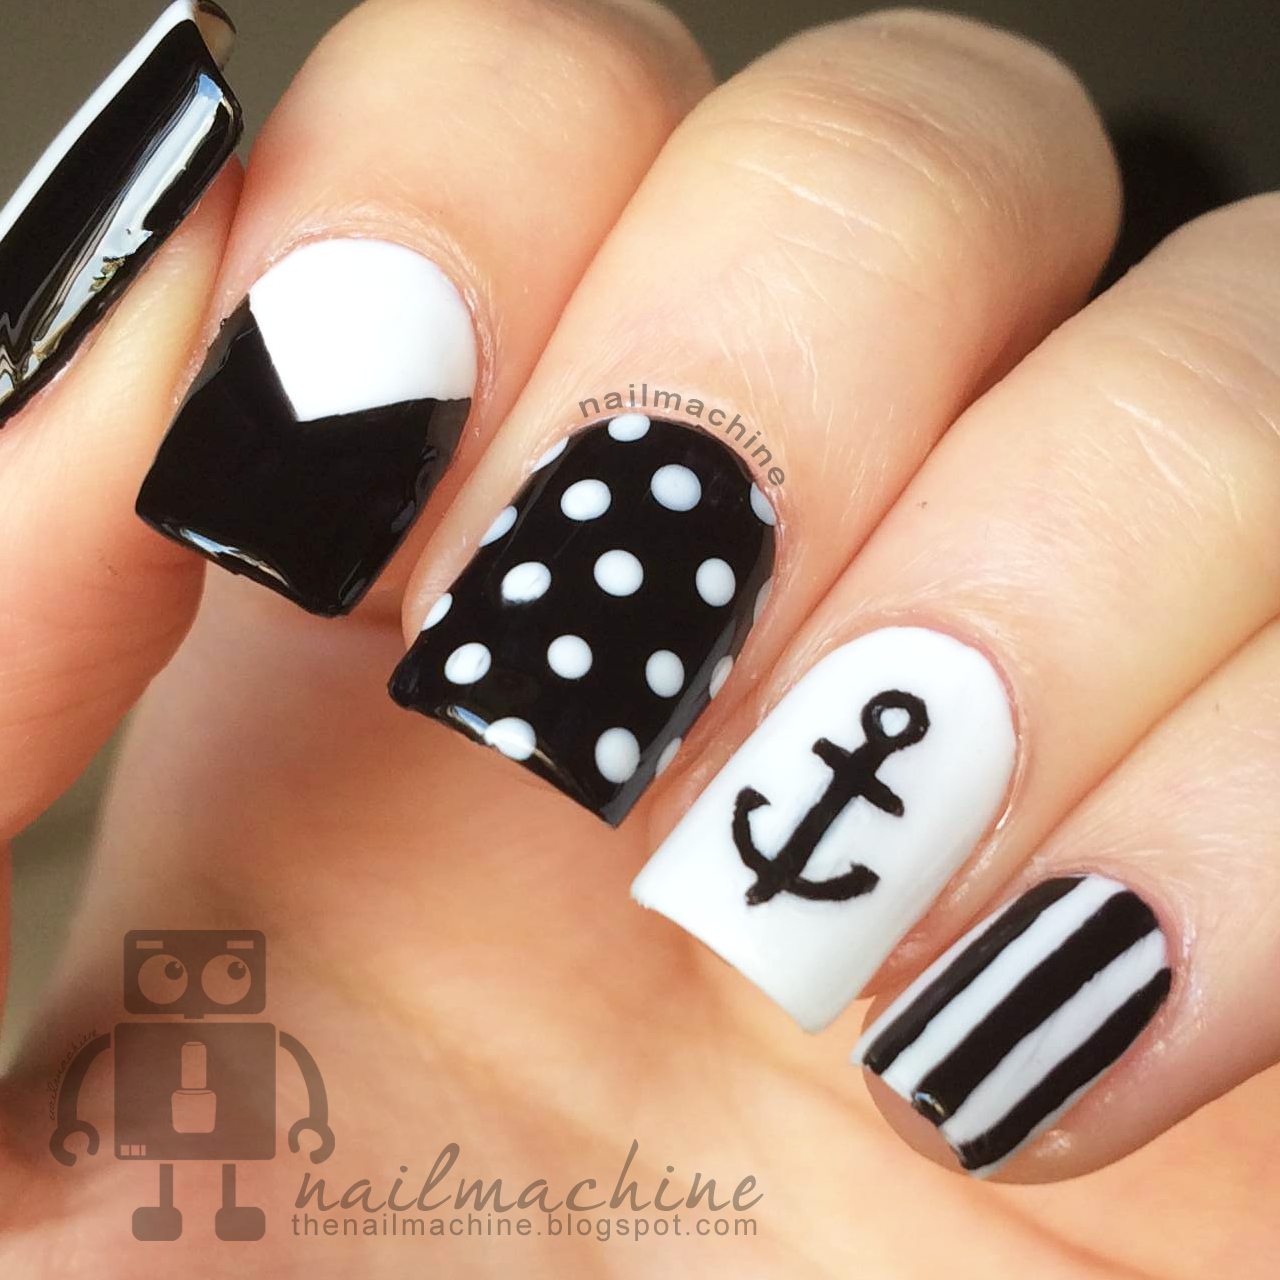 cute-nail-designs-with-anchors-the-nailmachine-awesome - - Cute-nail-designs-with-anchors-the-nailmachine-awesome - Cute